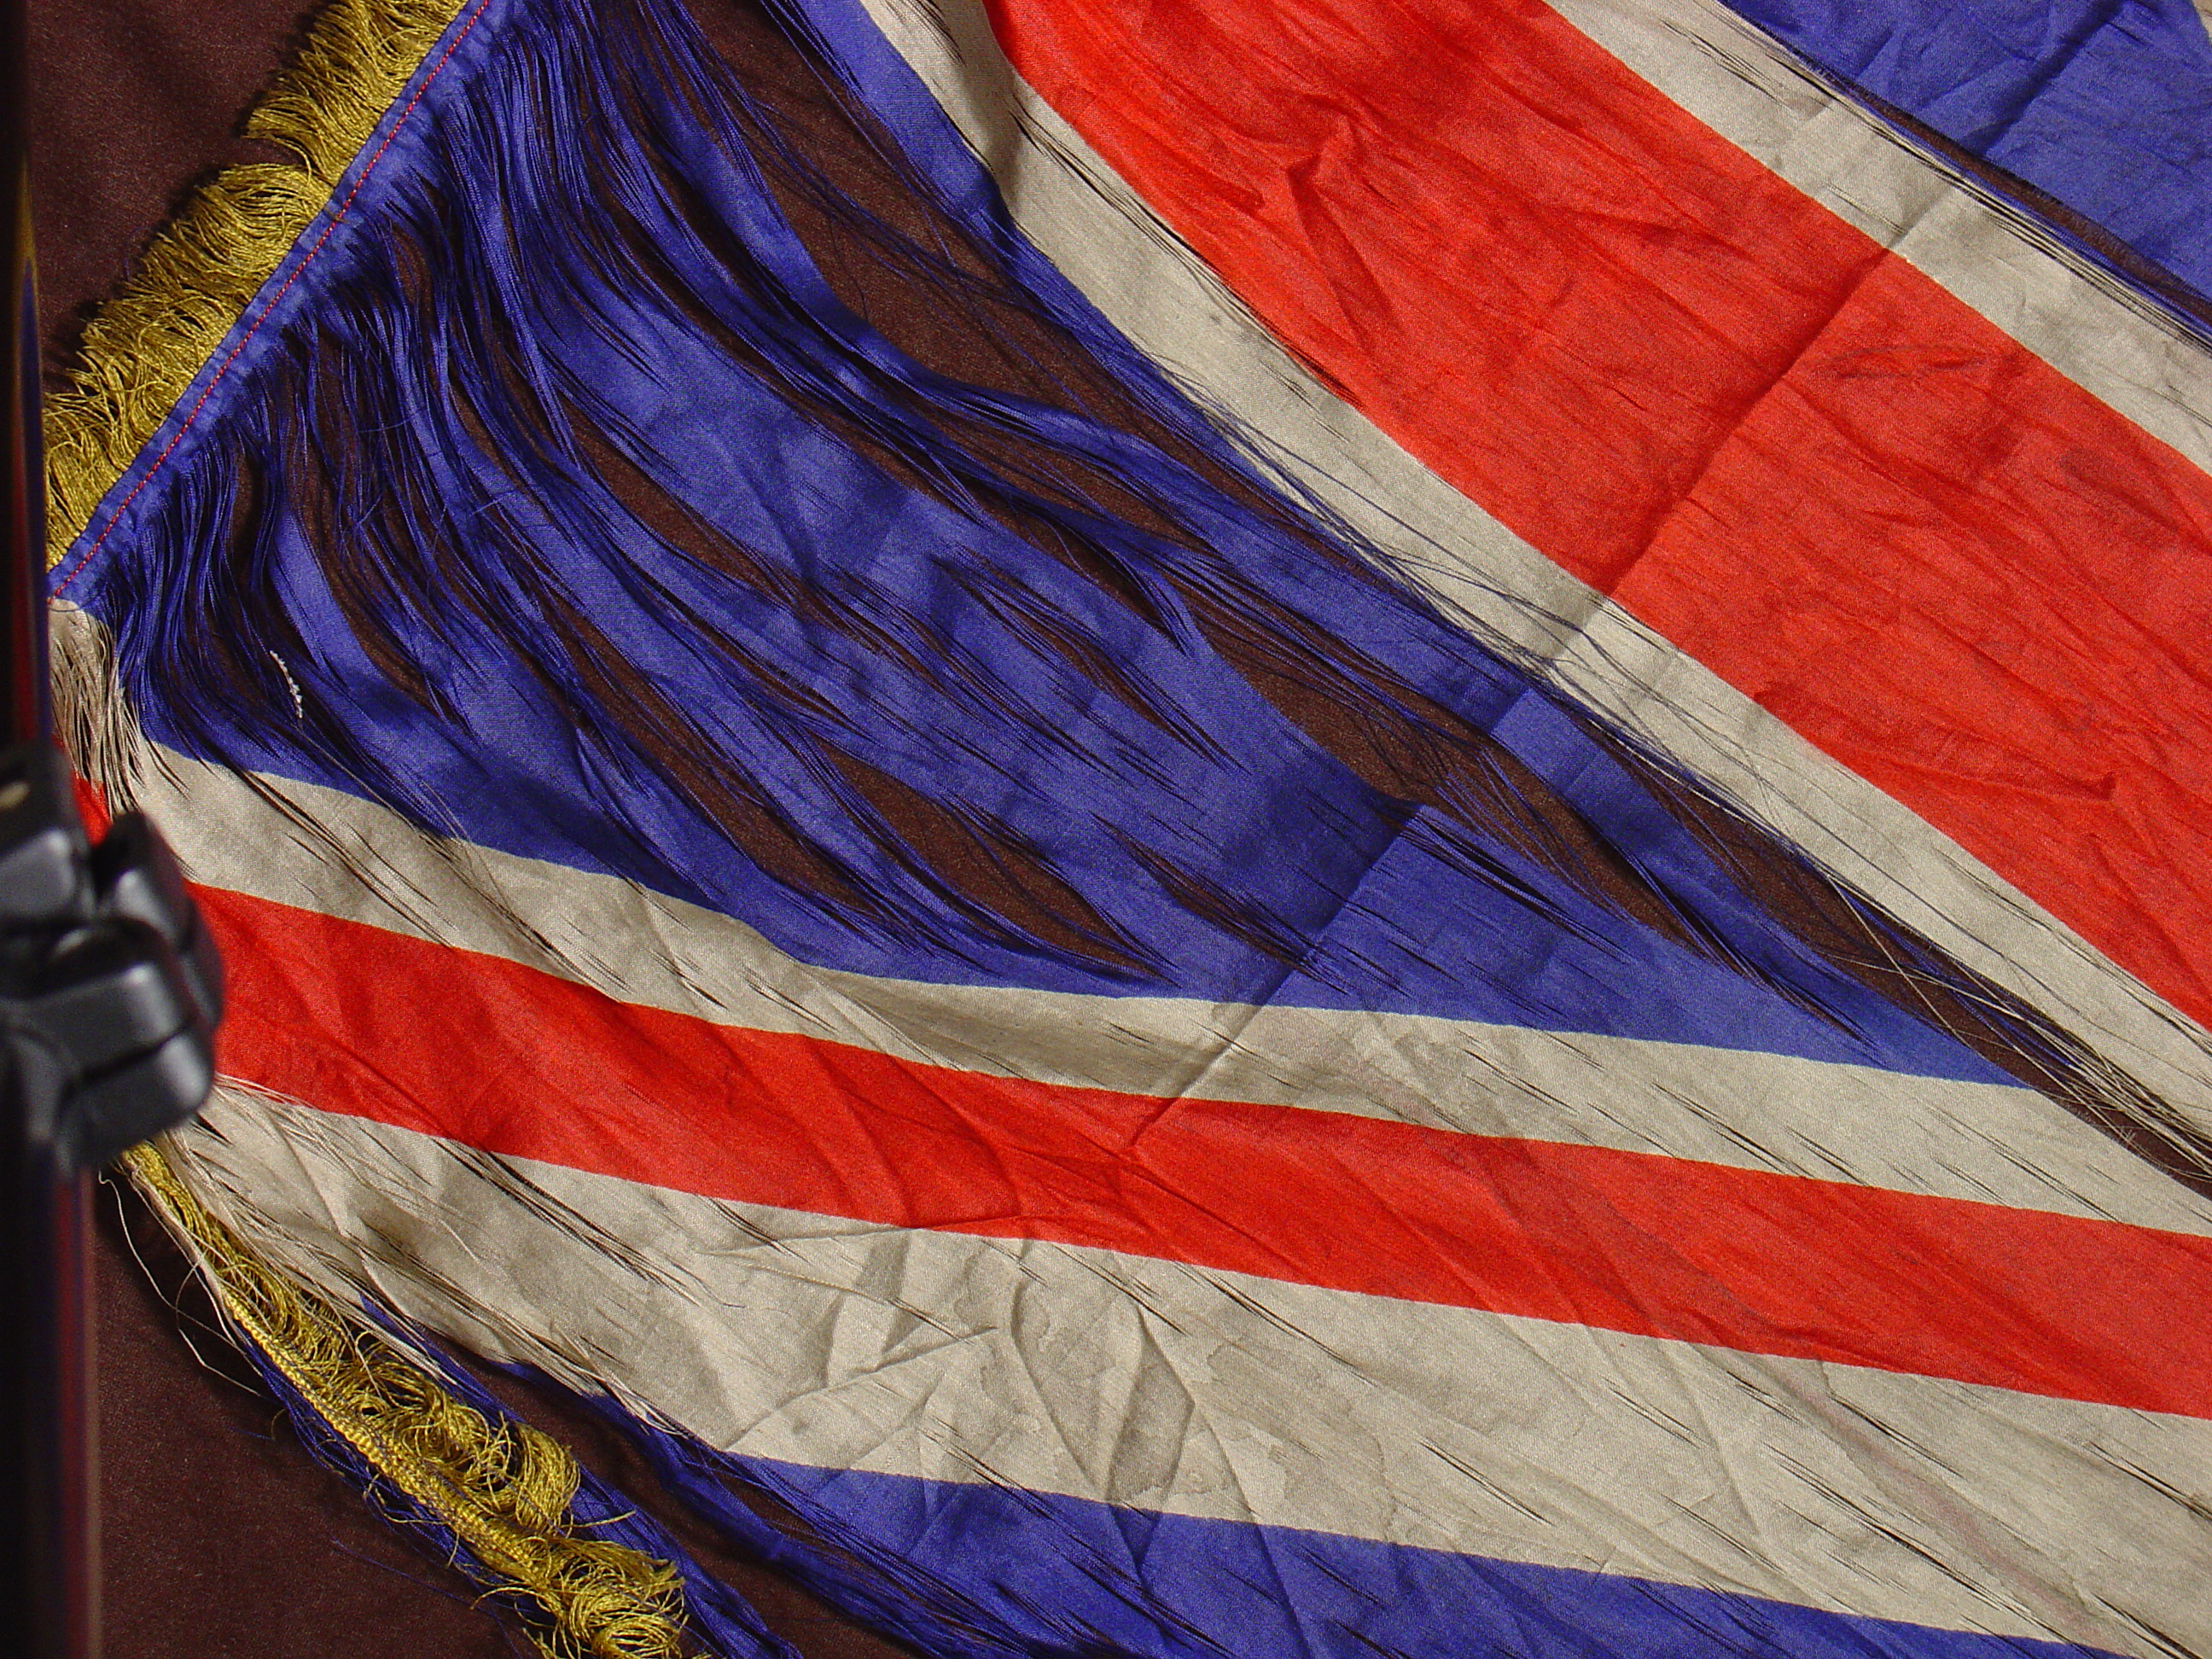 union jack british flag search the collection spurlock museum u